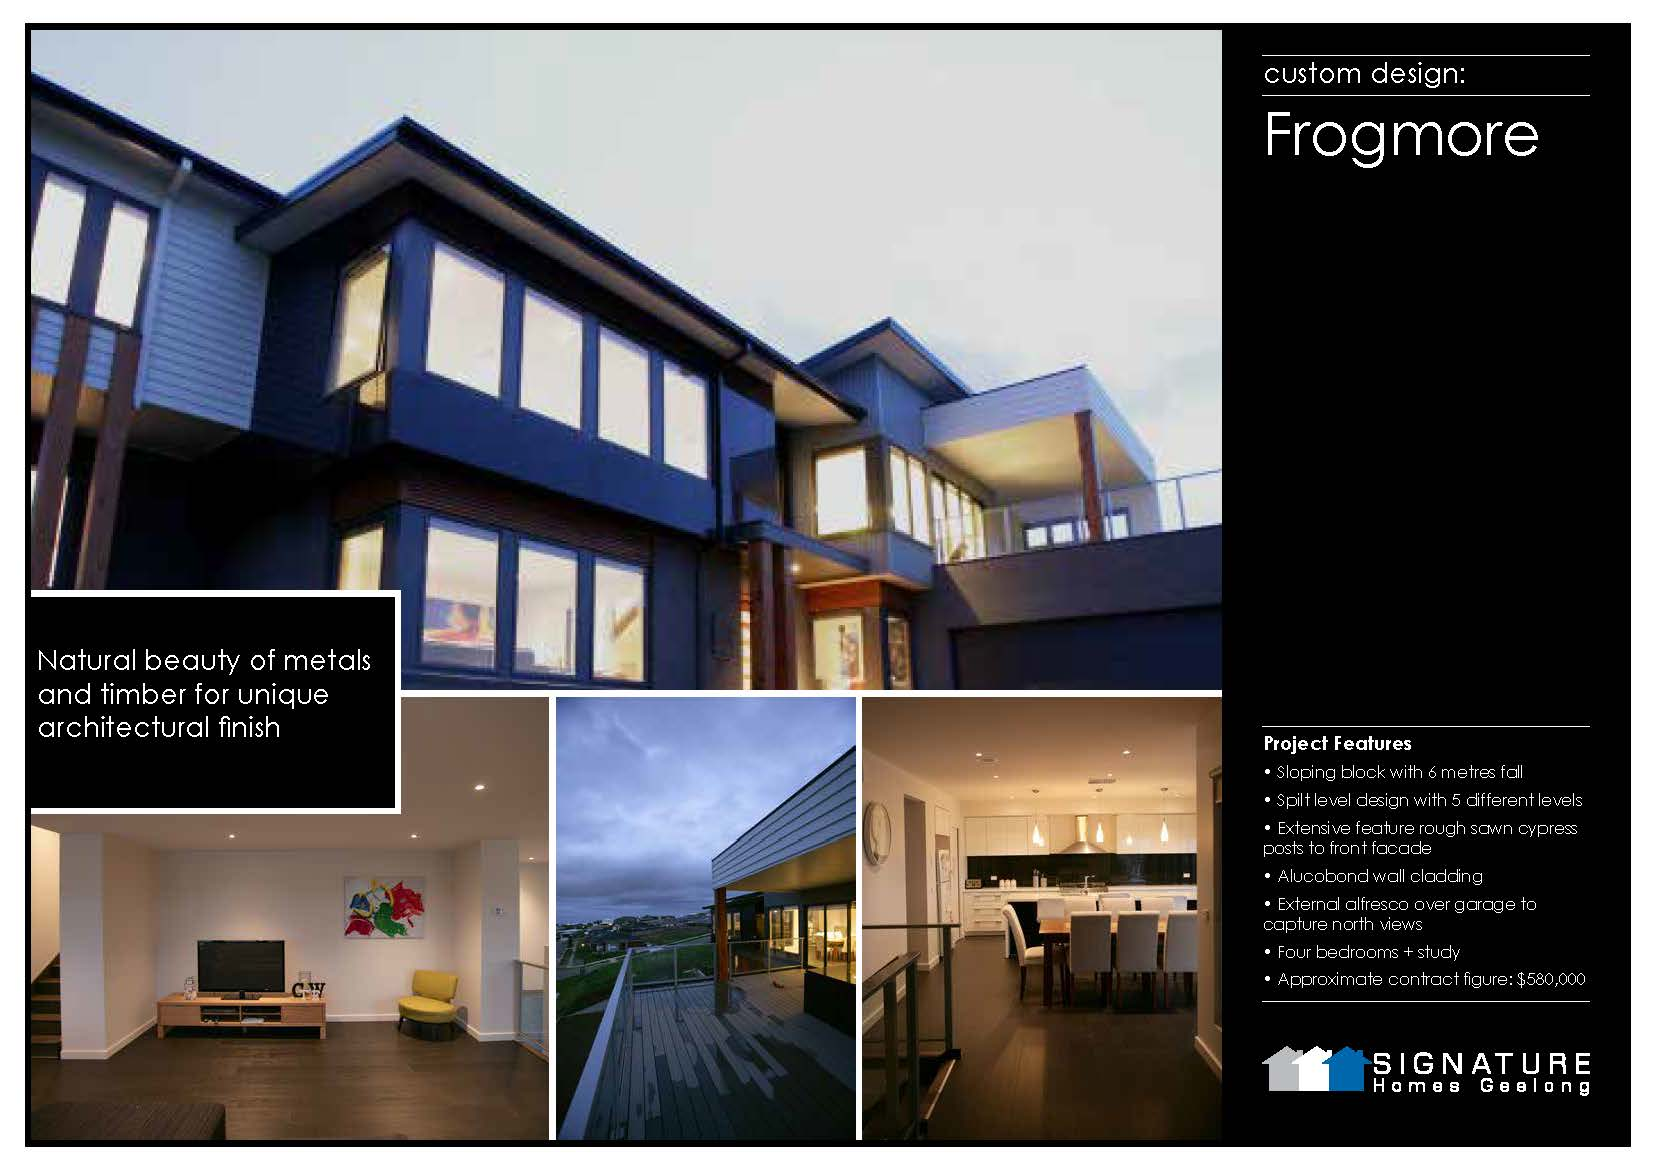 frogmore-1